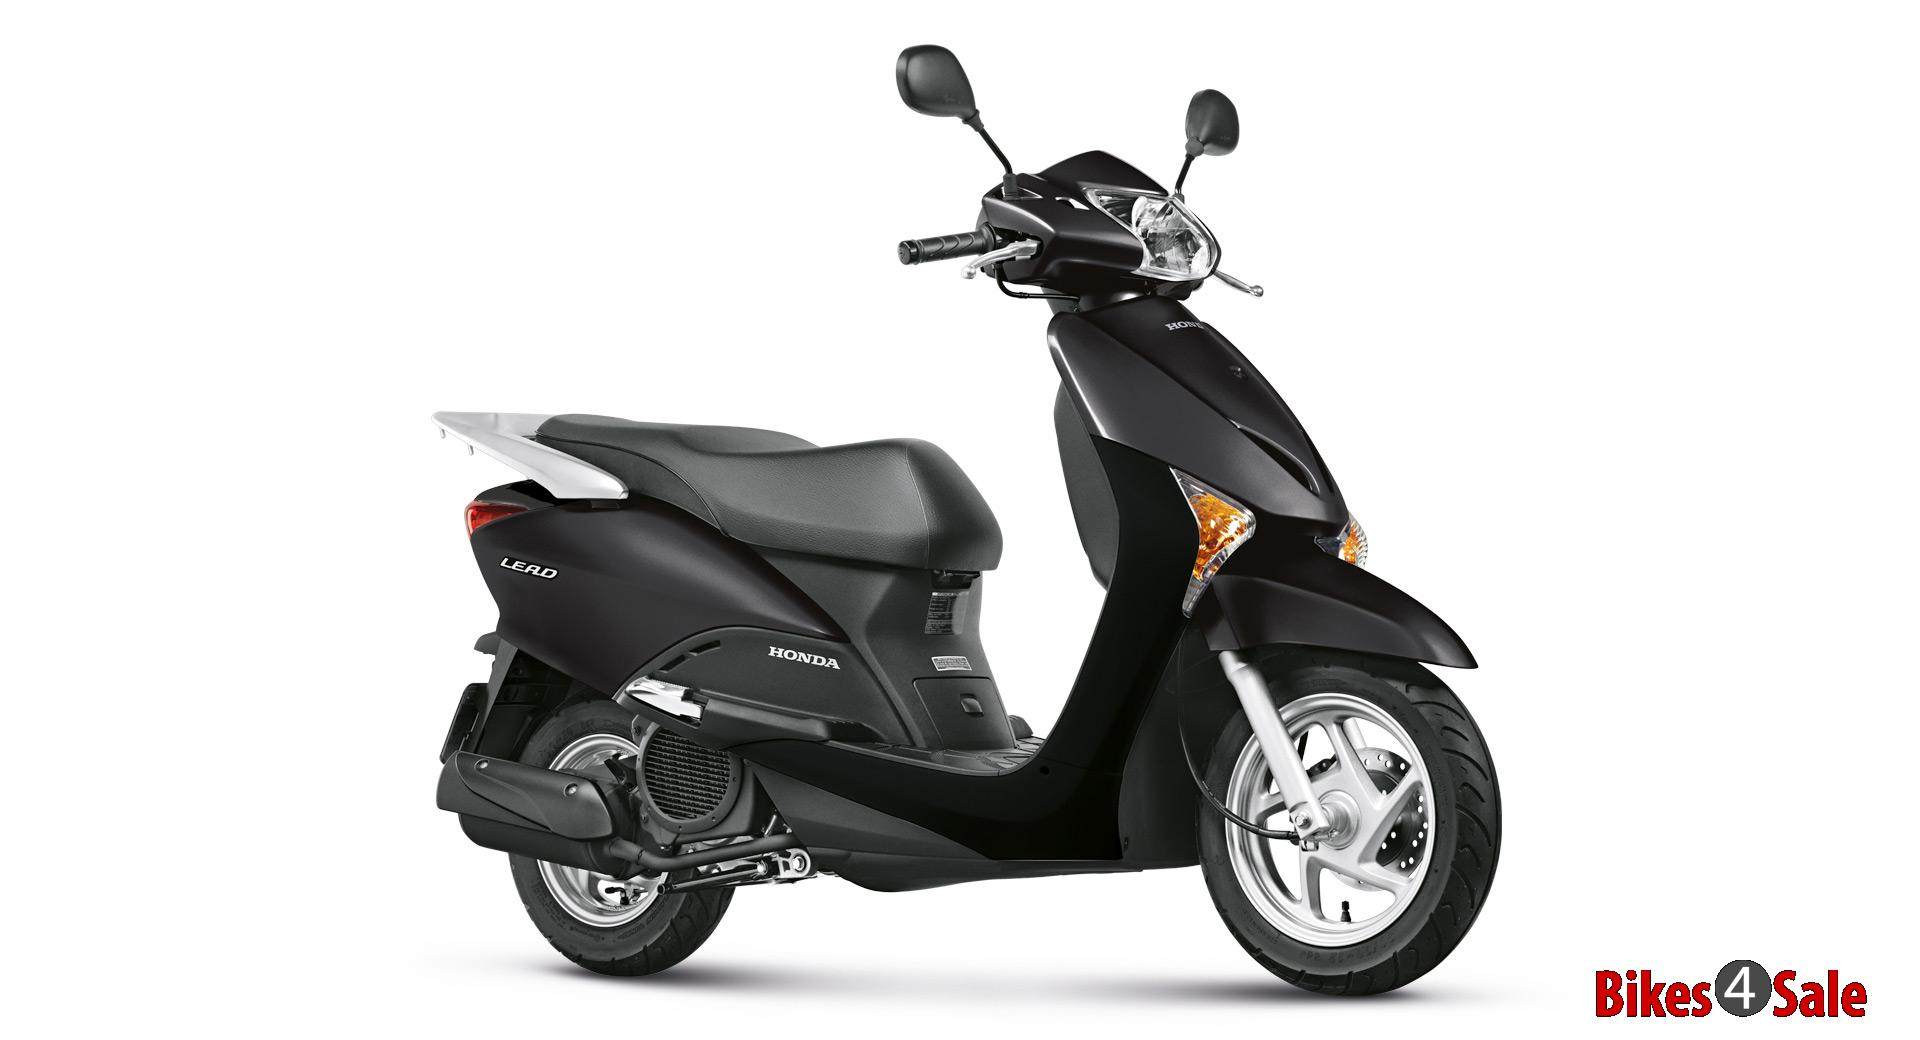 honda lead 110 scooter picture gallery bikes4sale. Black Bedroom Furniture Sets. Home Design Ideas